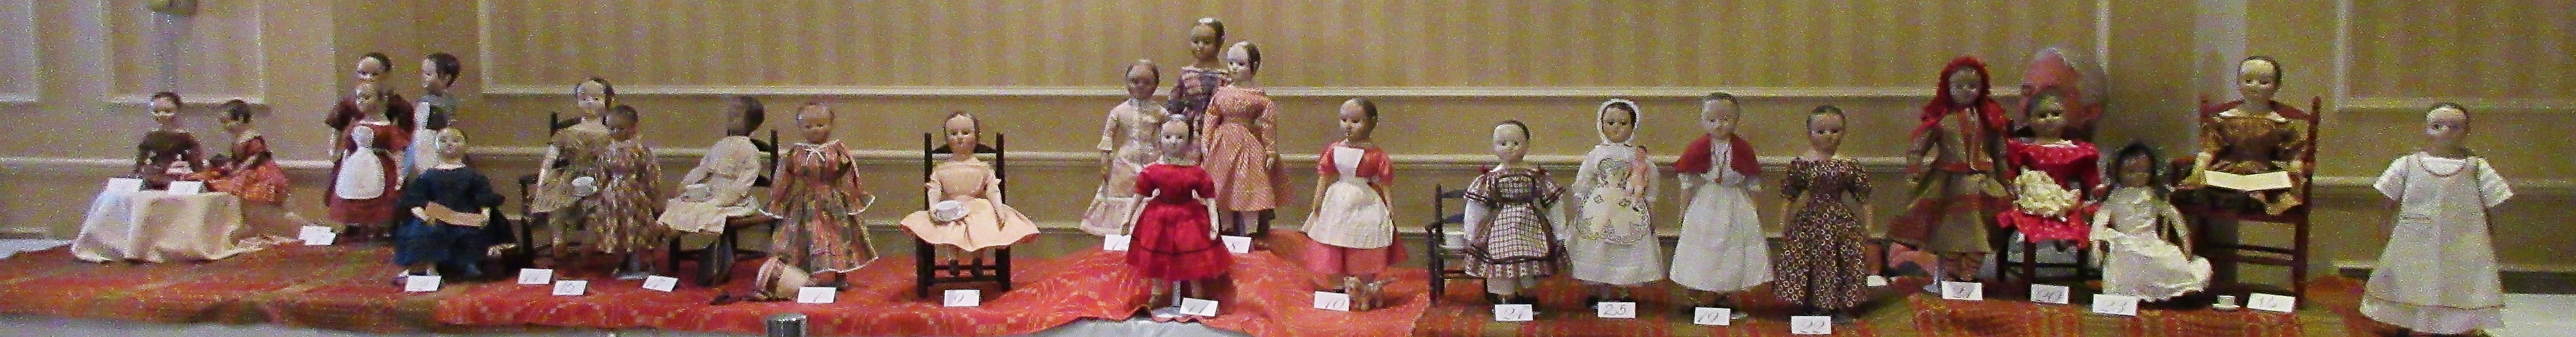 Izannah Walker Iconic American Doll Maker 1817 - 2017. Exhibit at the Jenny Lind Doll Show October 29, 2017. Author's photo.